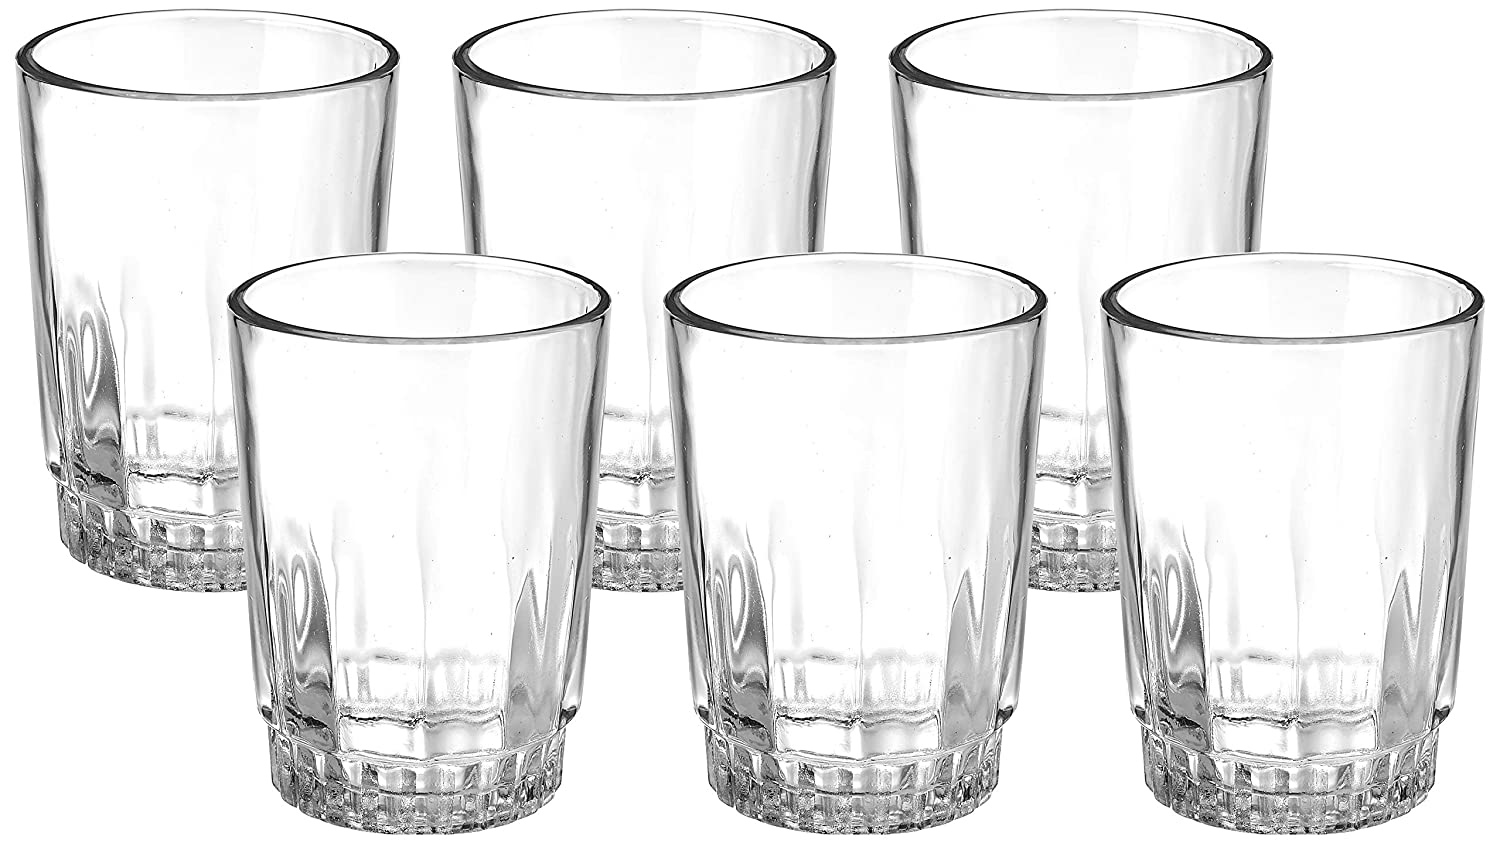 Amazon Brand – Solimo Juice/Water Glass Set for ₹375